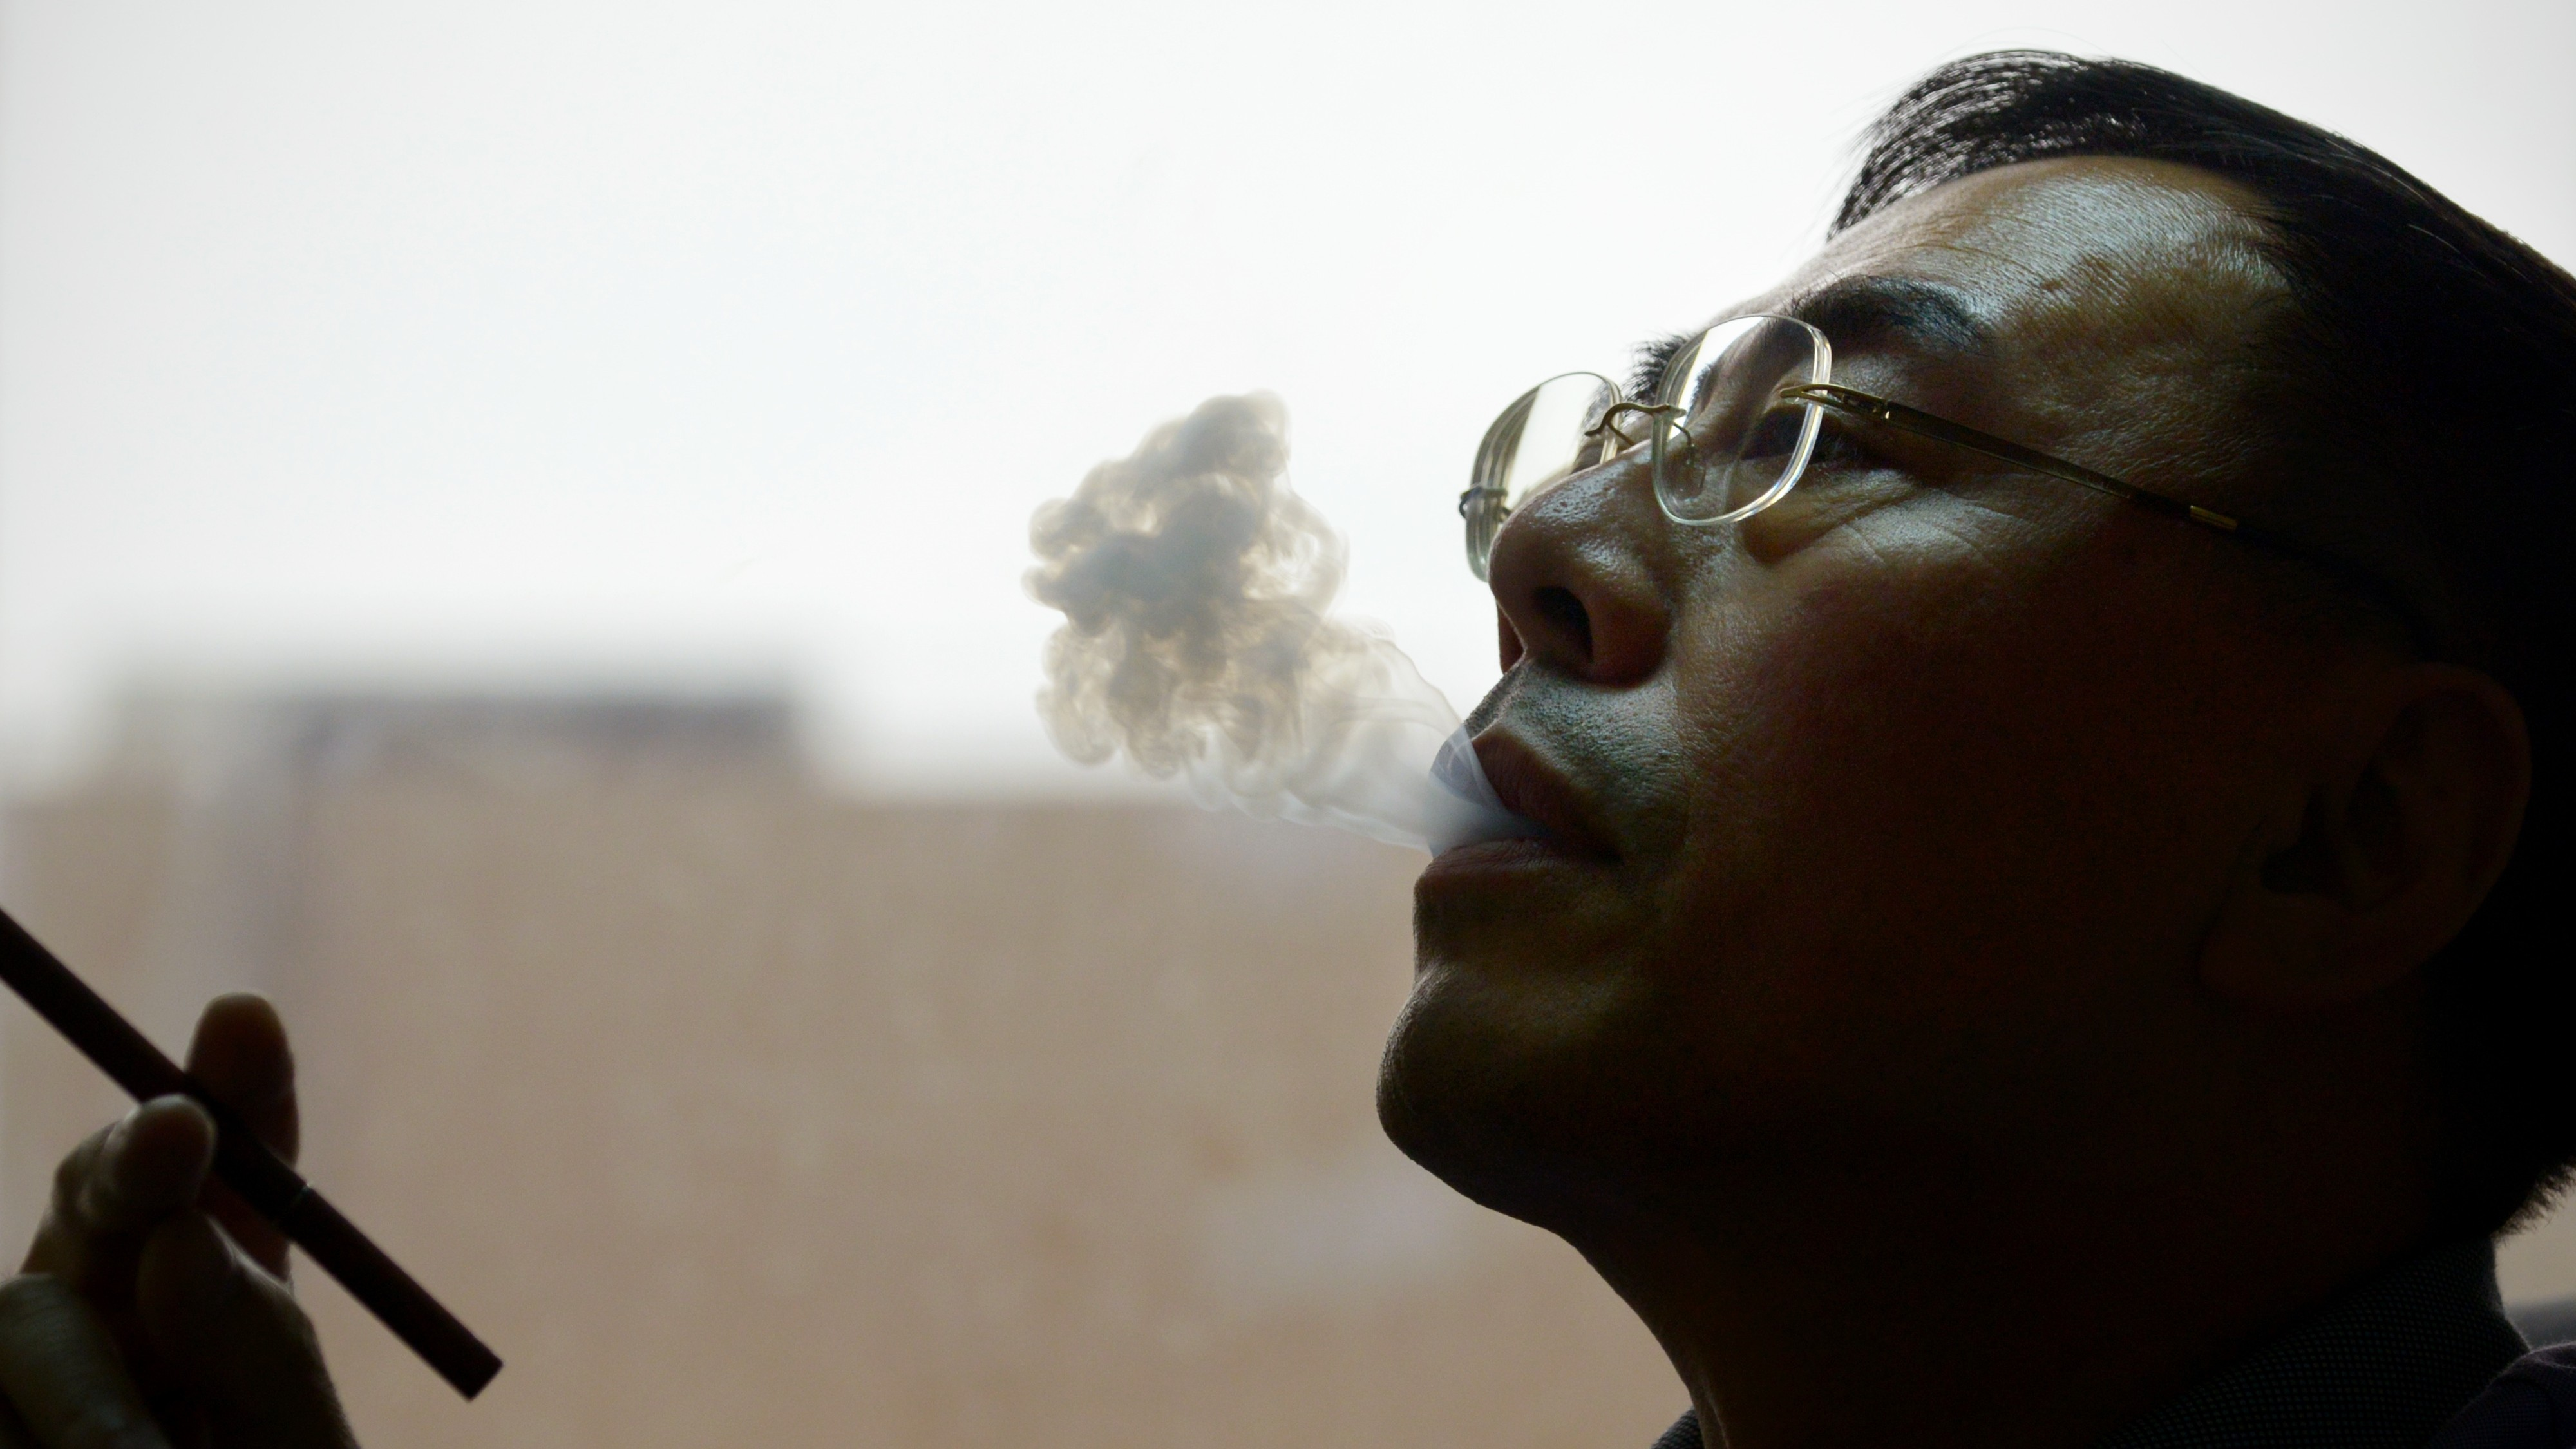 We Asked the Inventor of the E-Cigarette What He Thinks About Vape Regulations